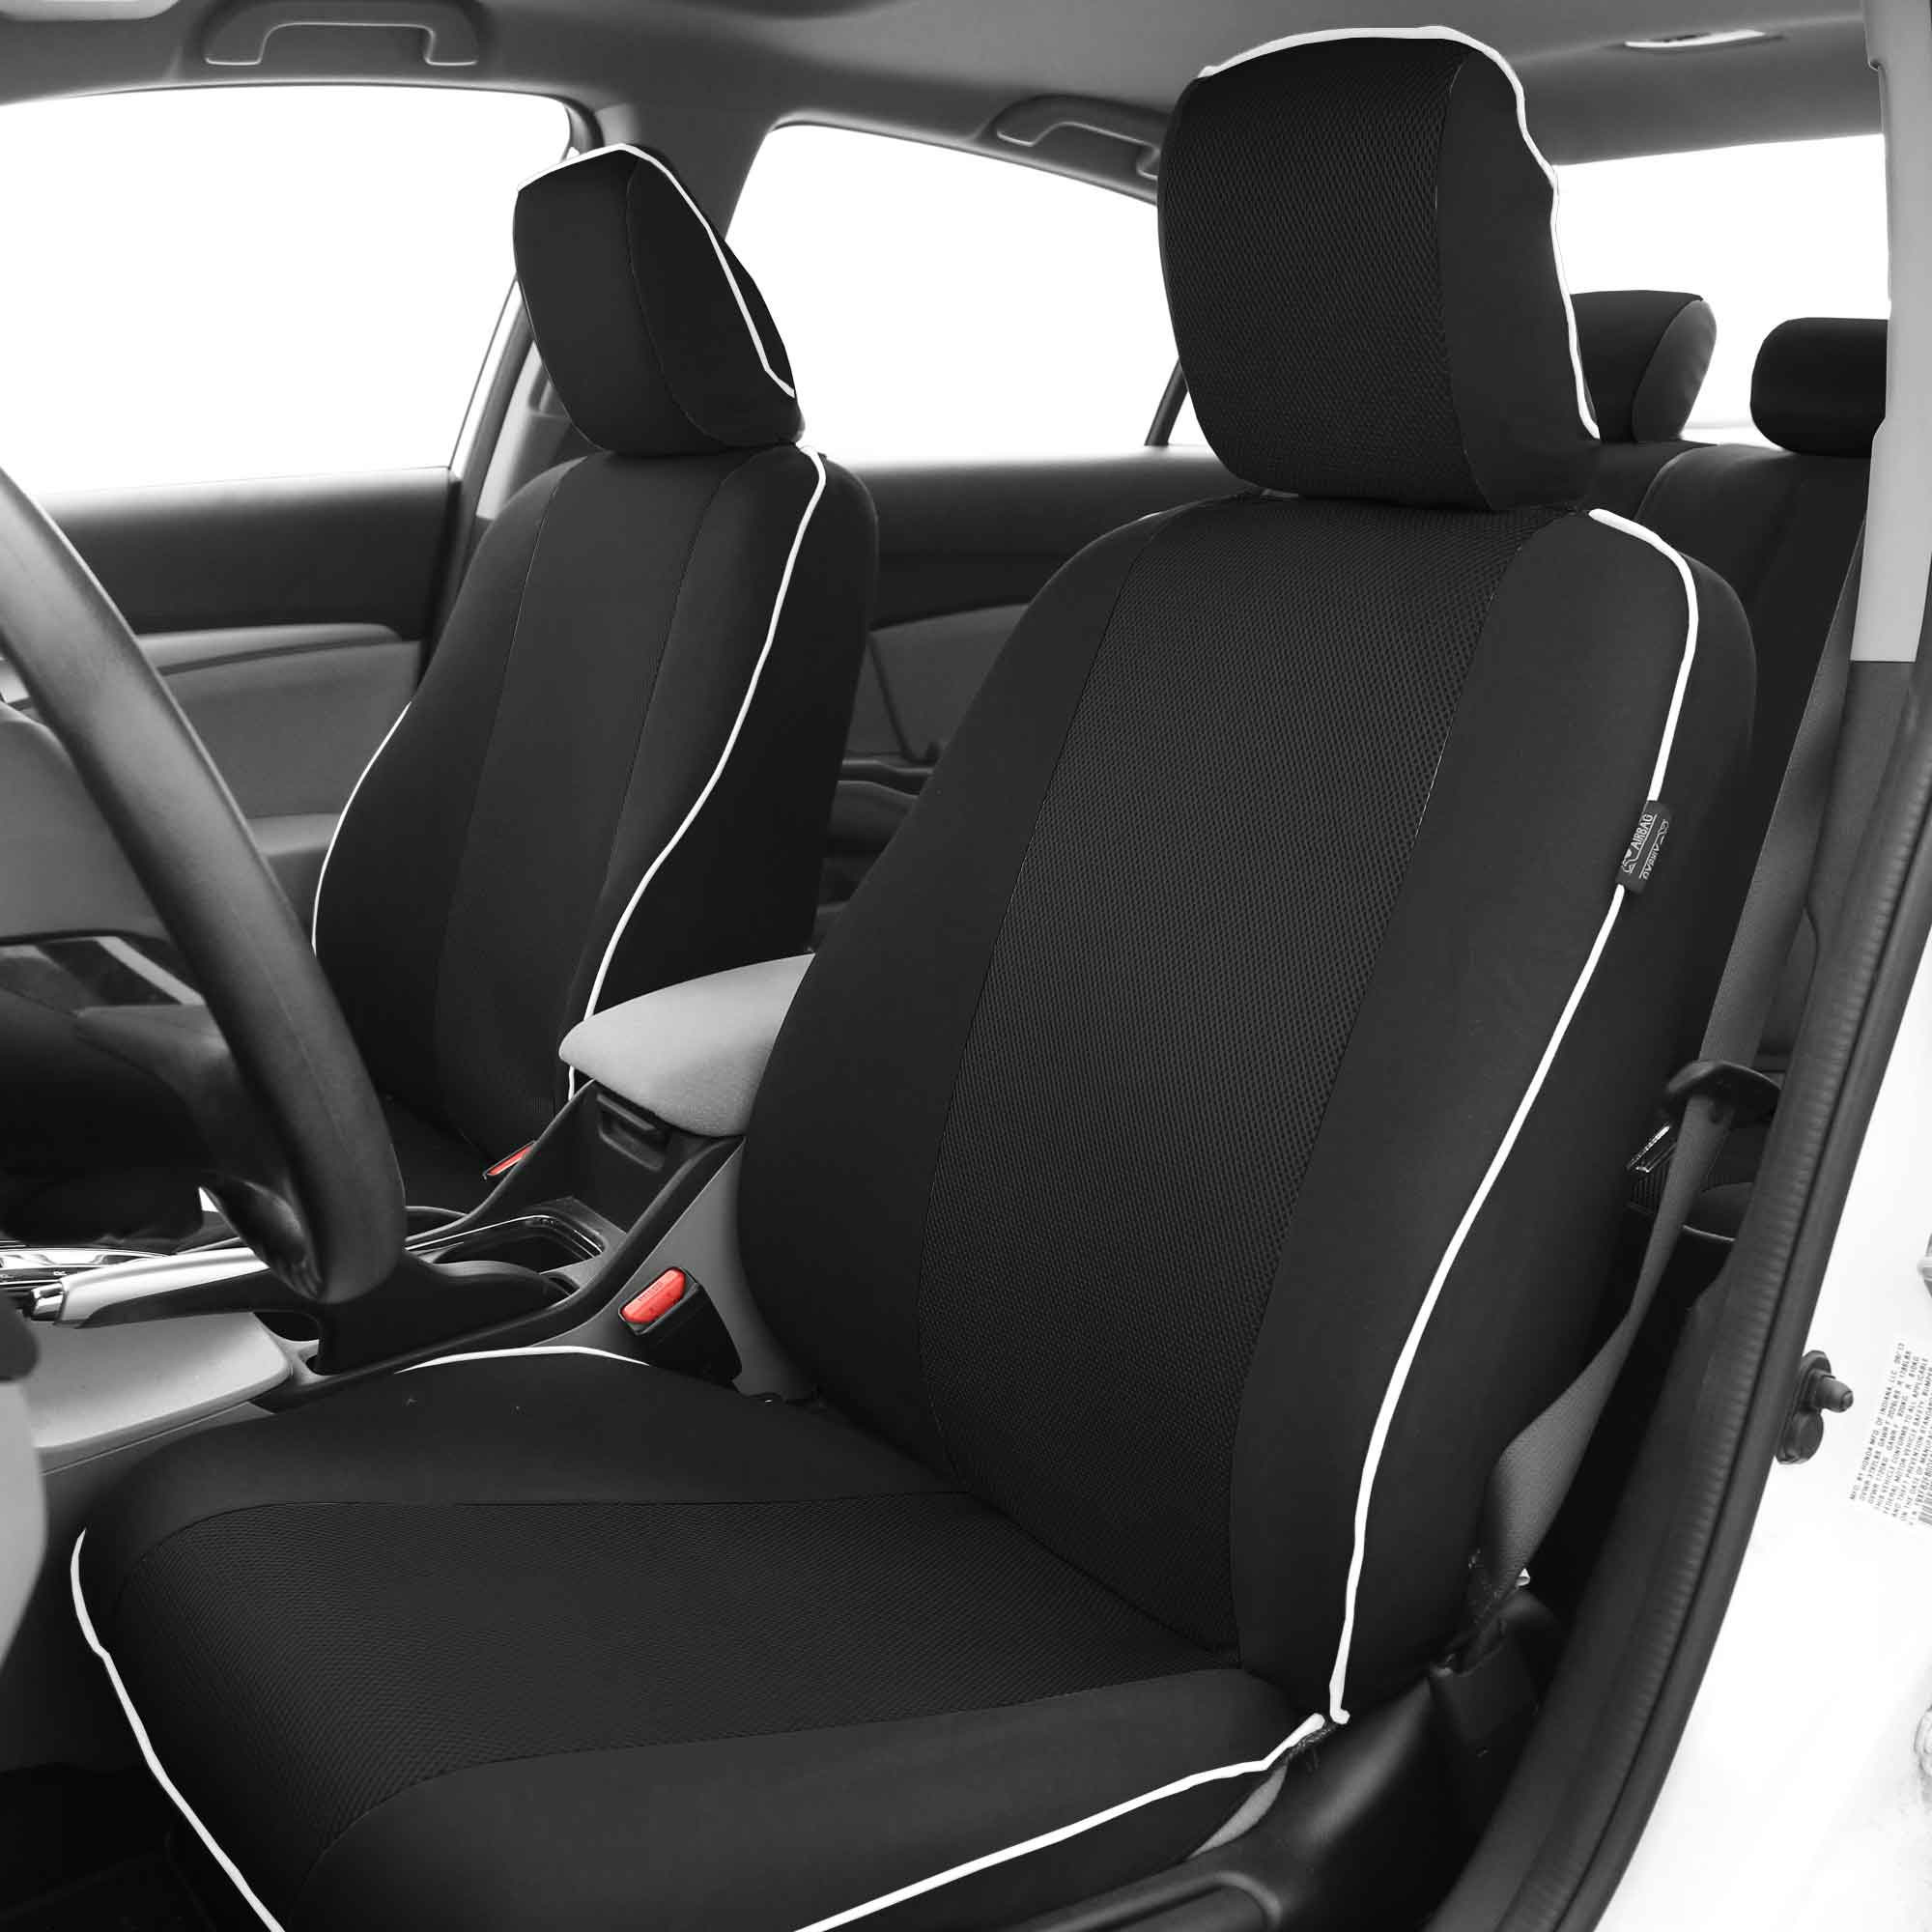 AUDI A4 ALLROAD BLACK SEAT COVERS WITH GREY PIPING